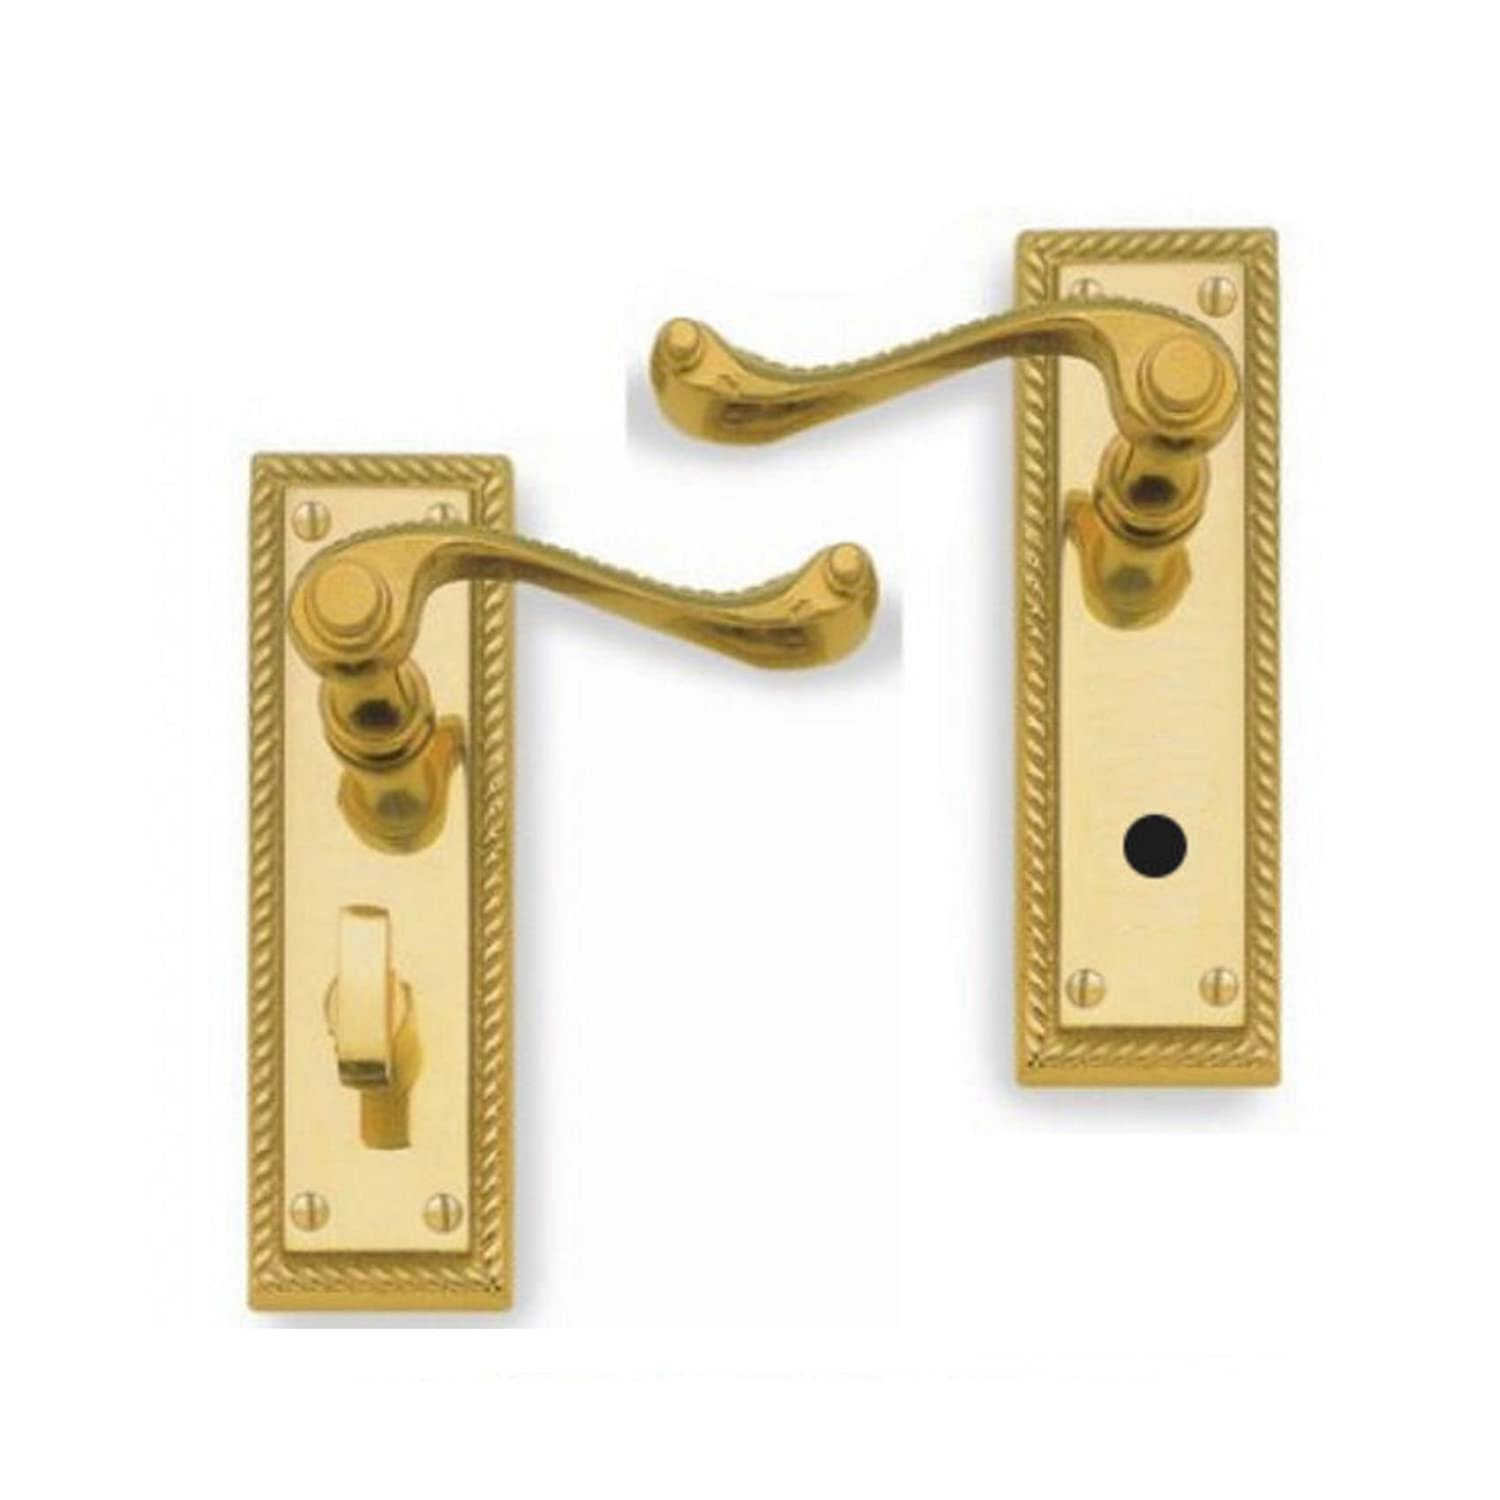 Solid Polished Brass Georgian Scroll Bathroom Door Handles OriginalForgery